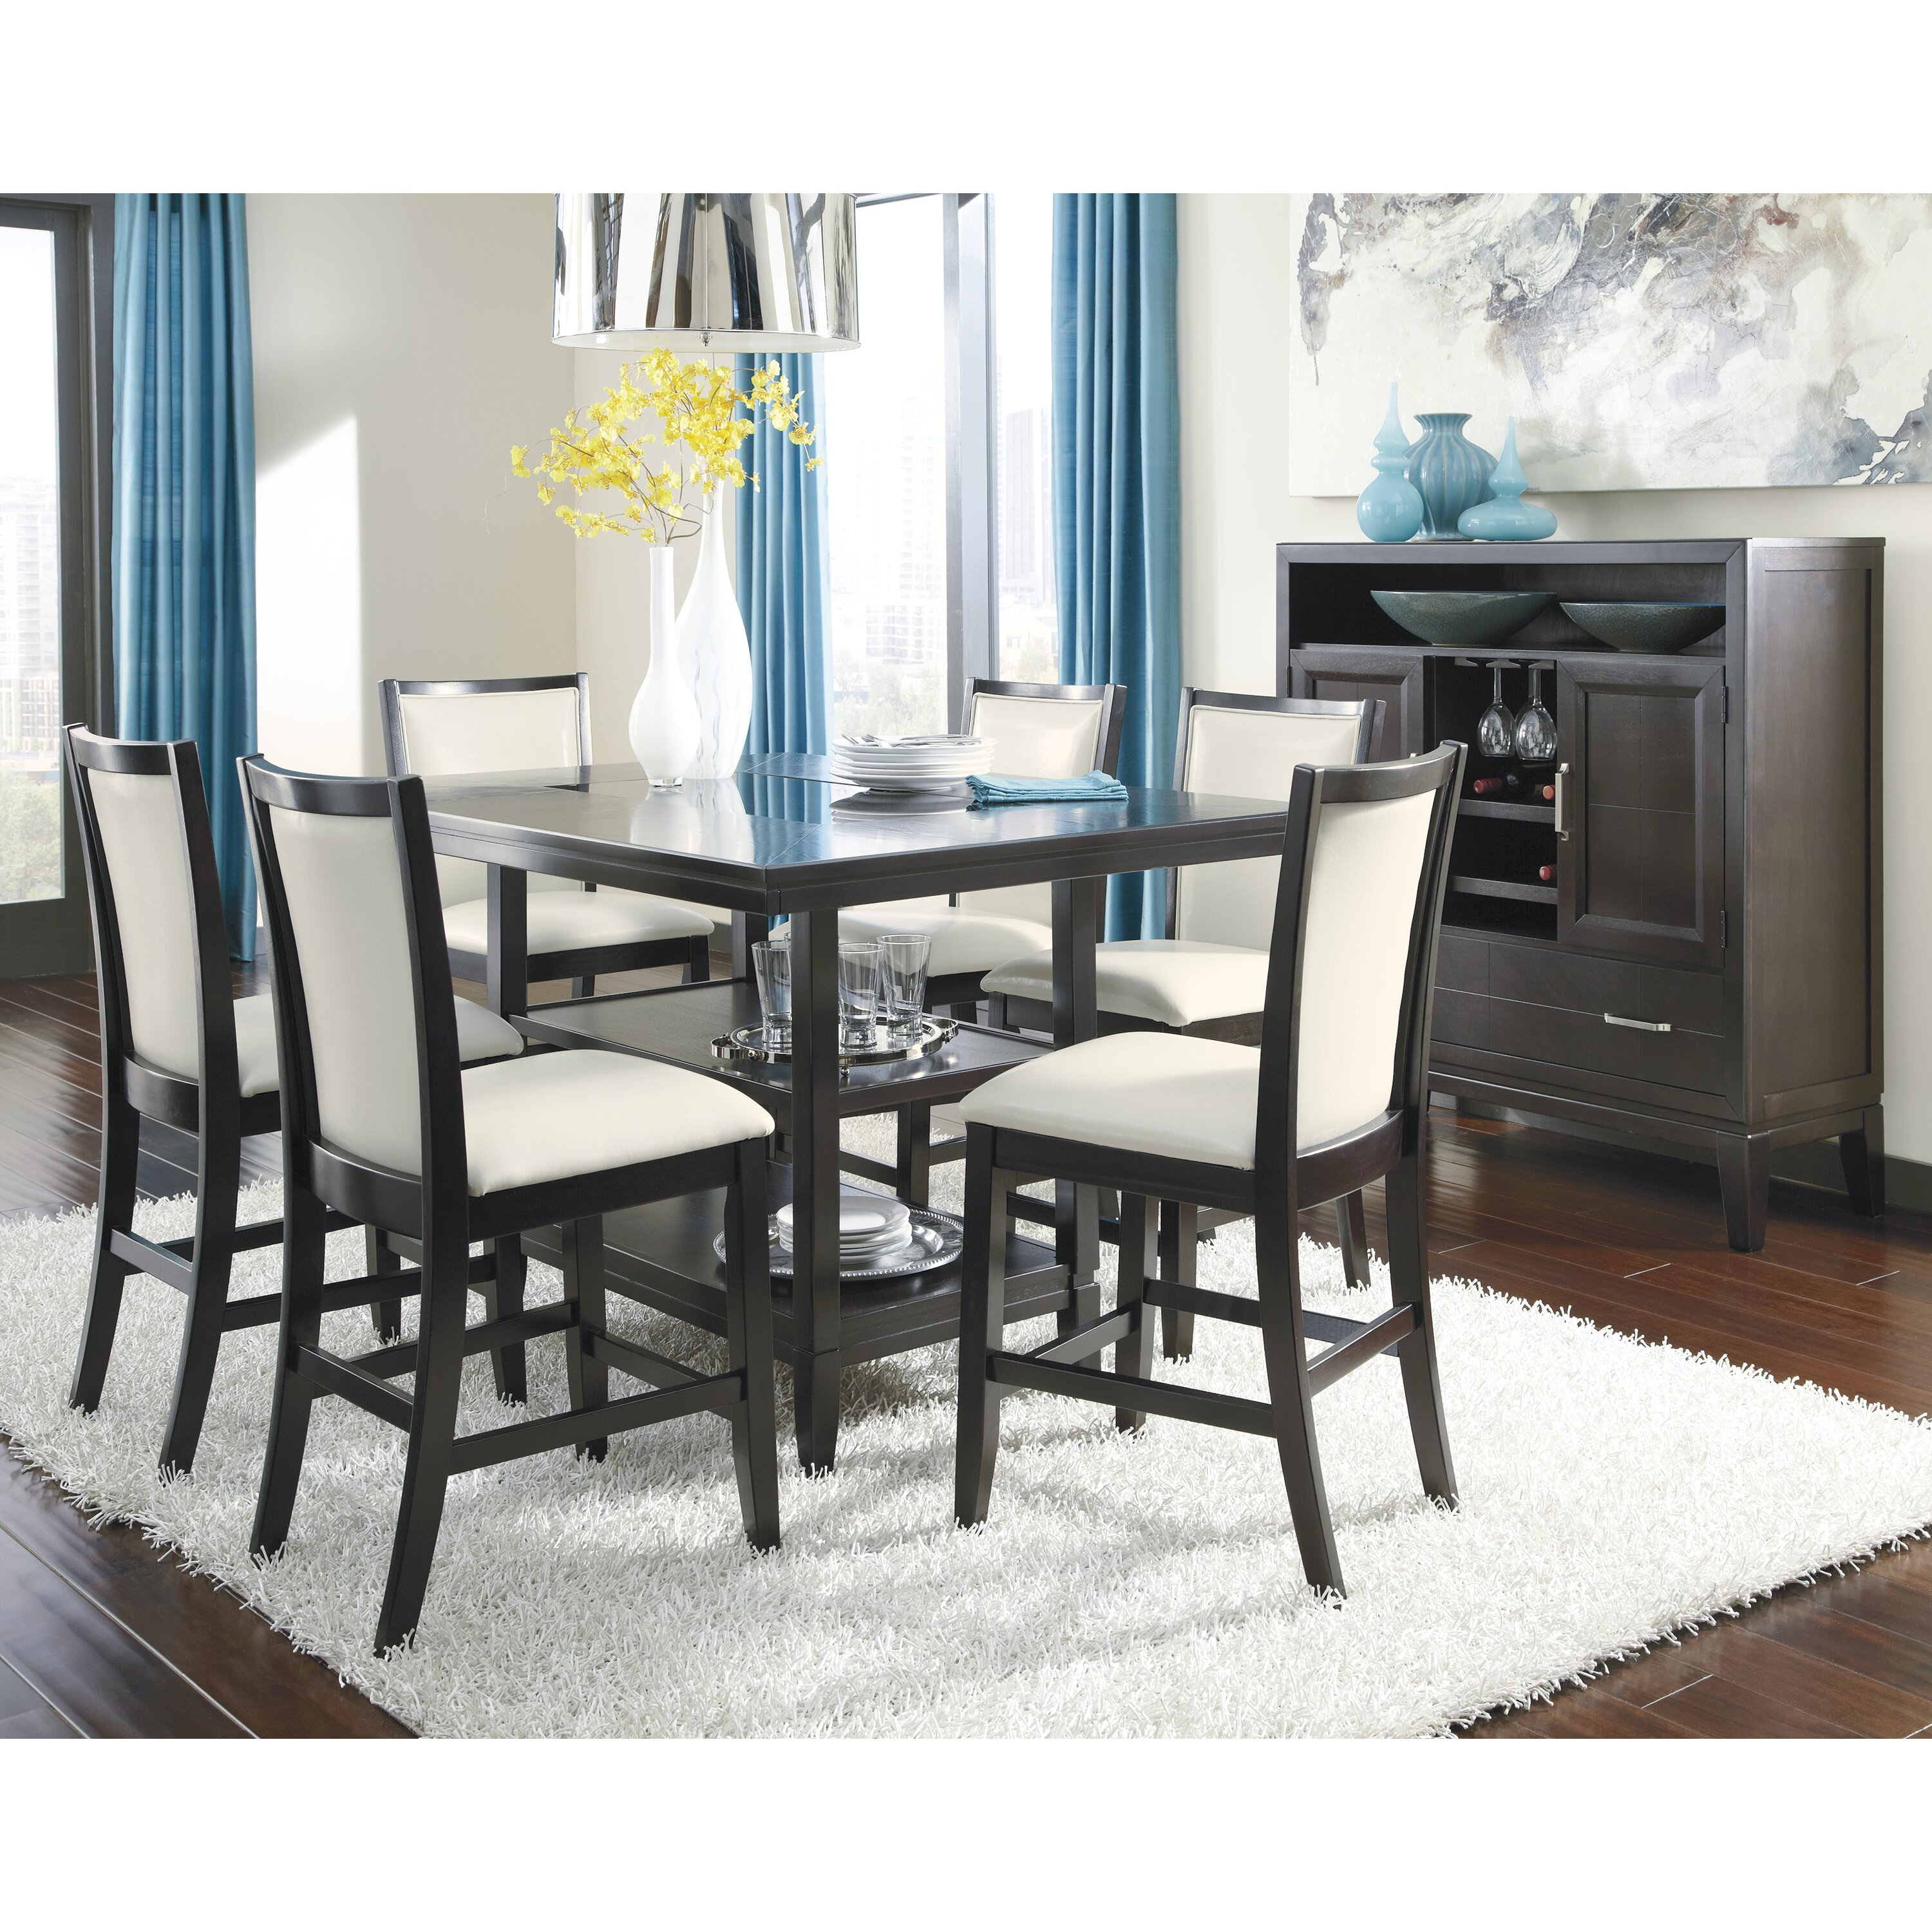 Stunning Counter Height Dining Room Table Sets Images